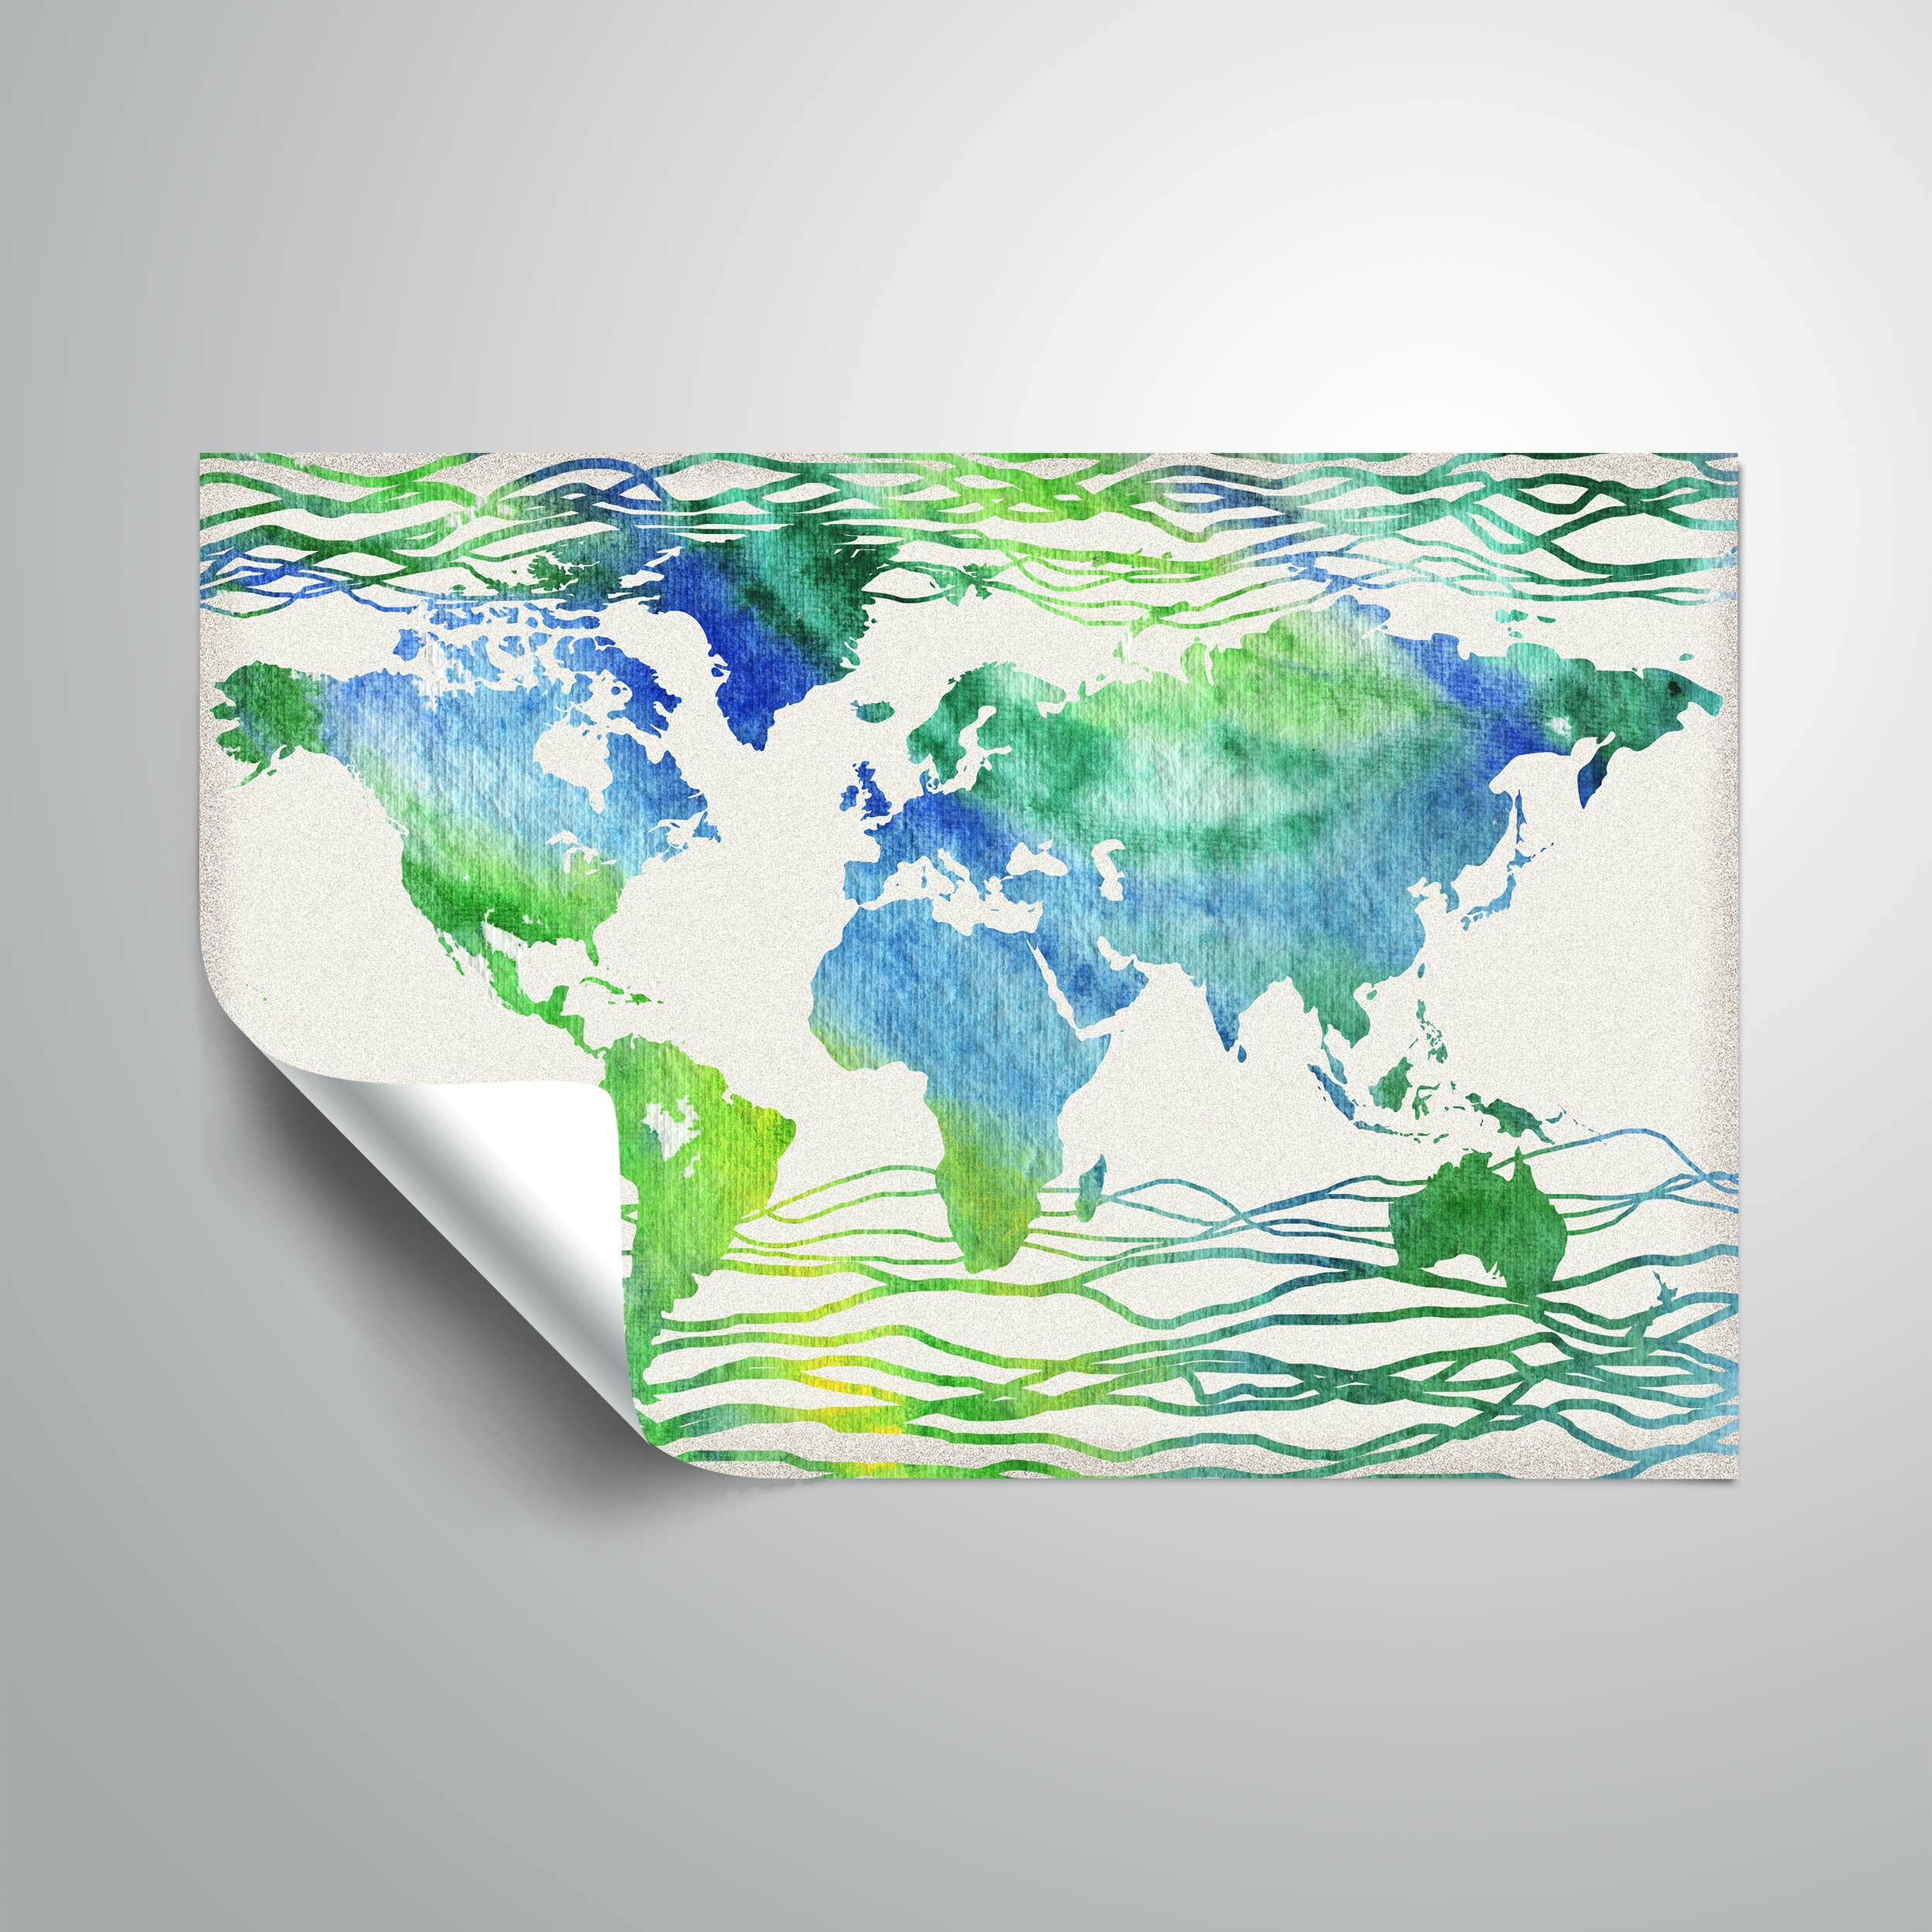 Wrought studio gillham blue green world map wall decal wayfair gumiabroncs Choice Image